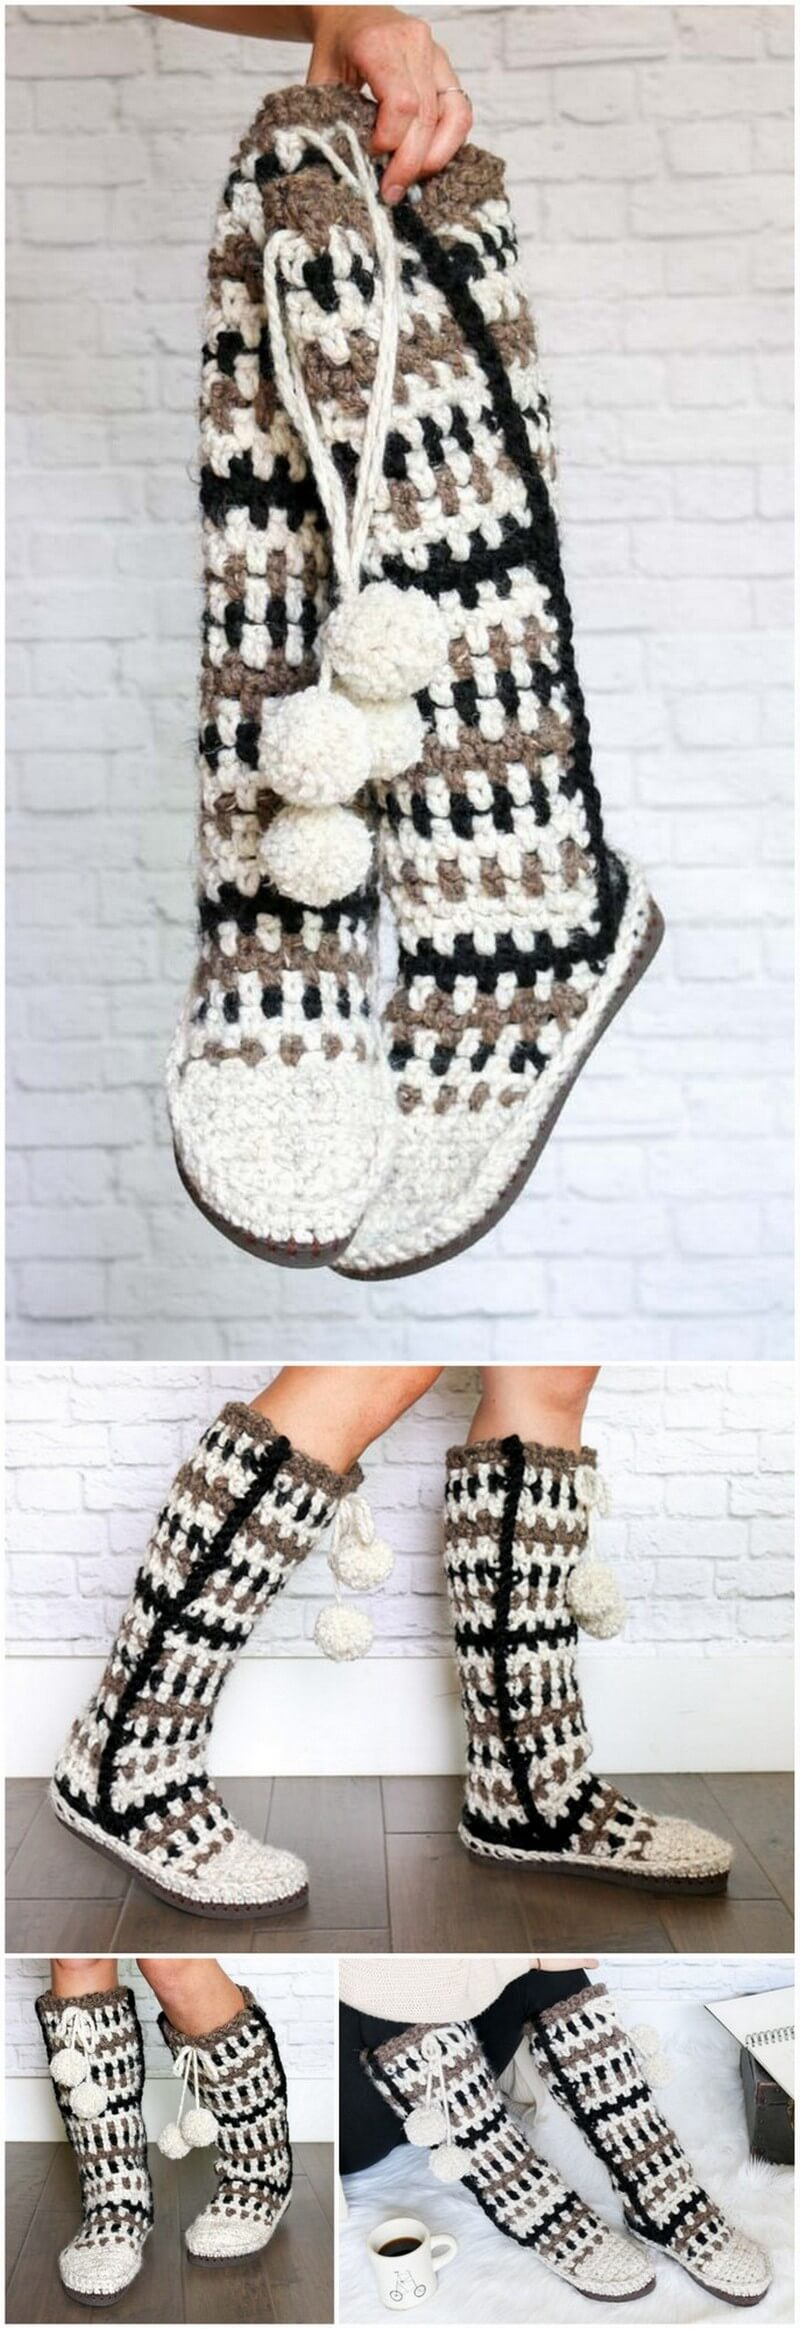 Crochet Slipper Pattern (45)